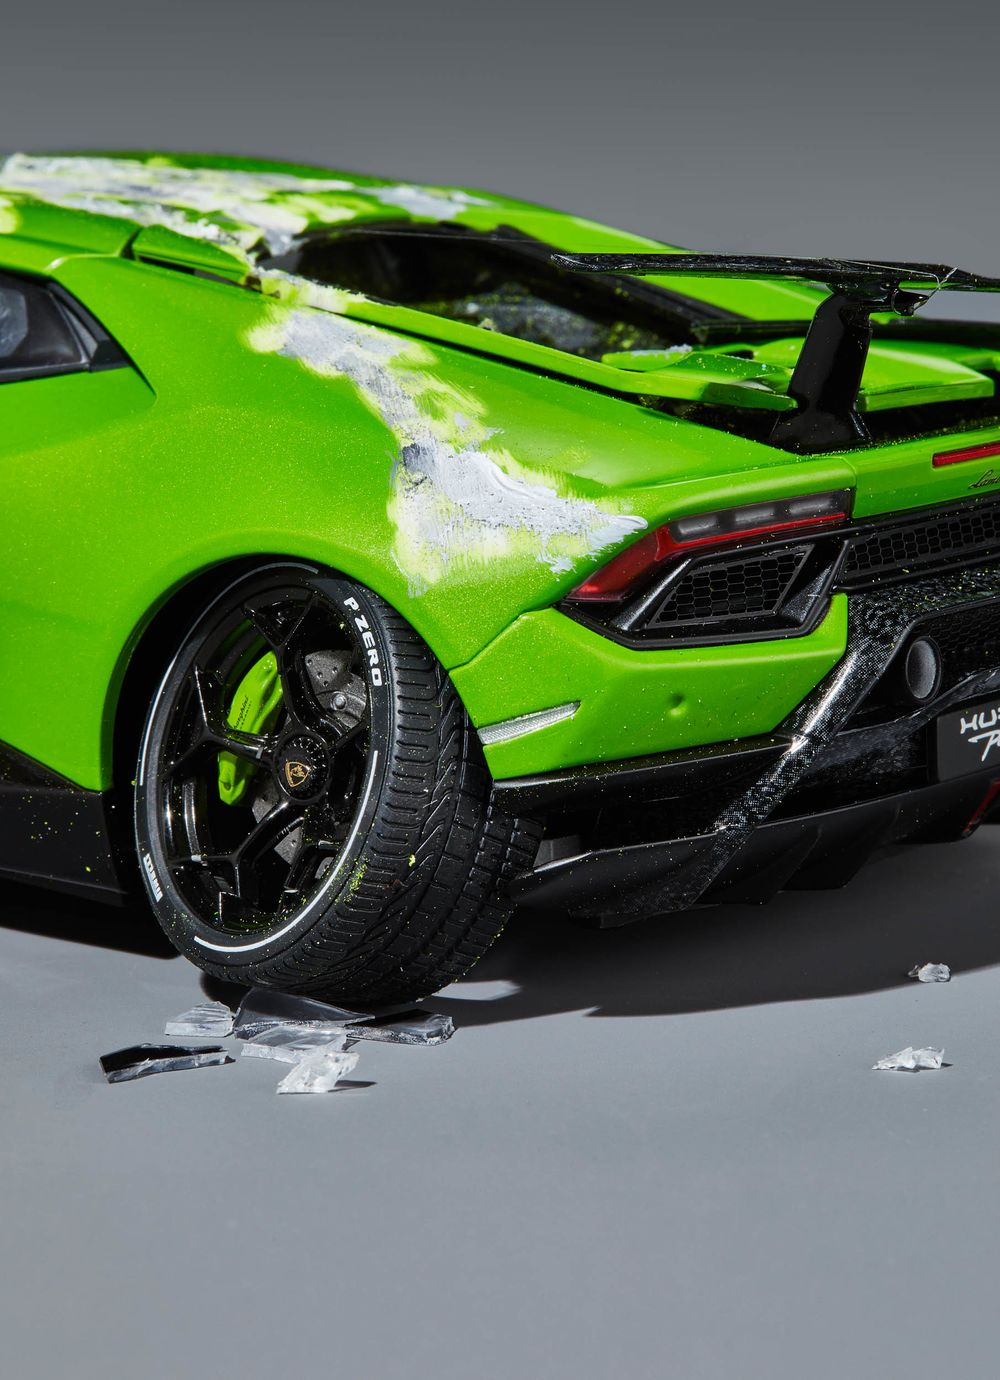 So You Crashed A 3 Million Supercar Now What Bloomberg